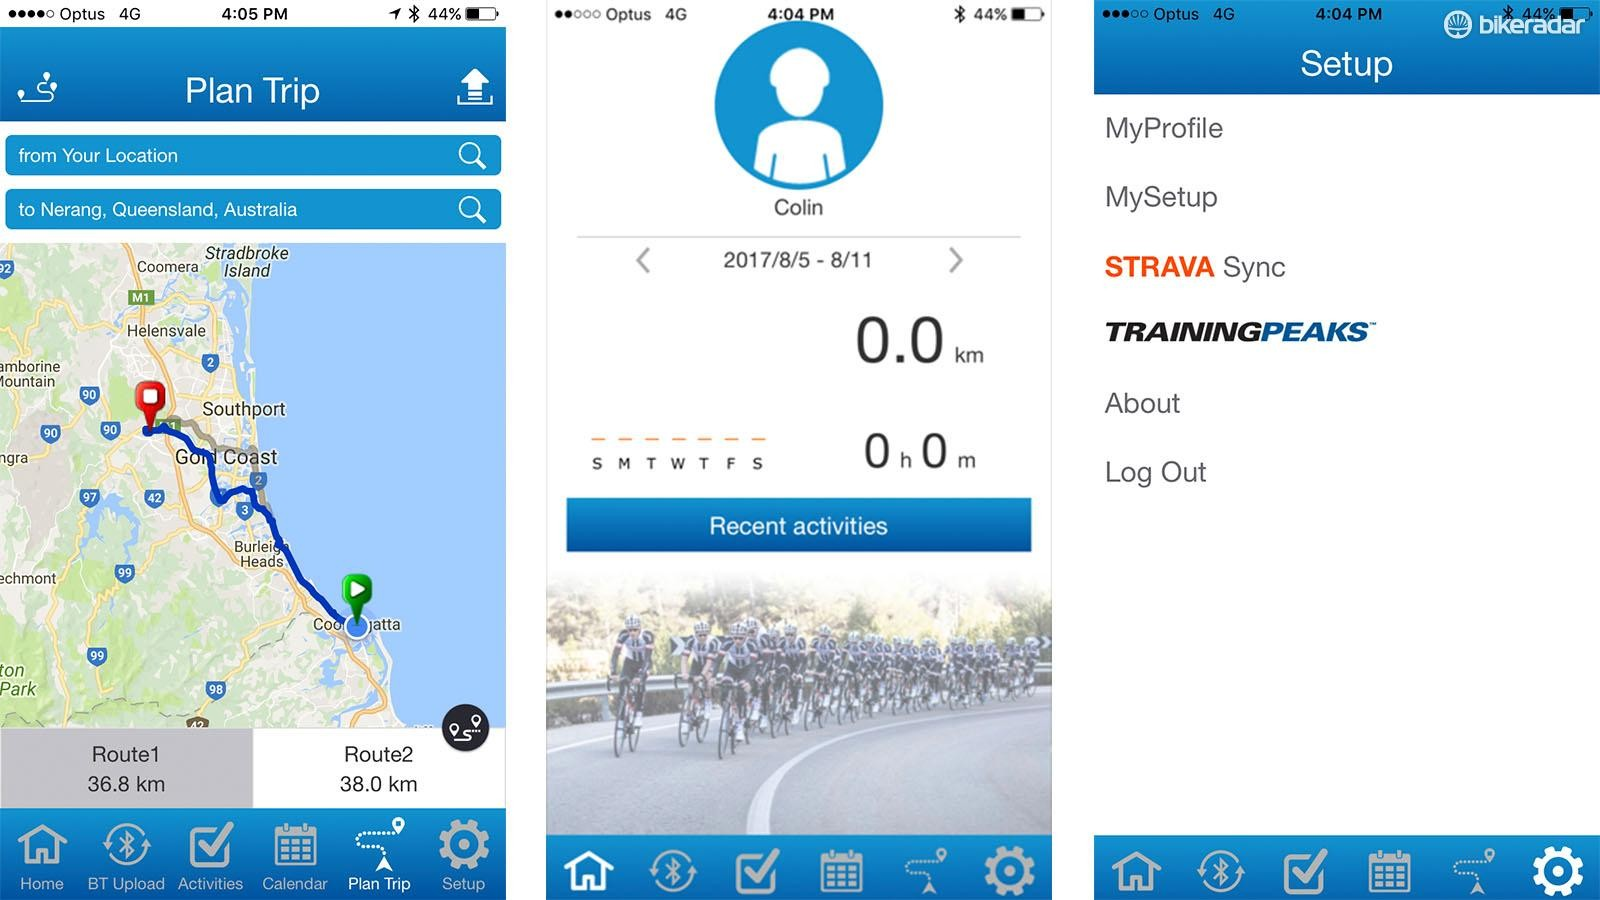 The app allows you to look at past workouts, sync over the air and plan routes